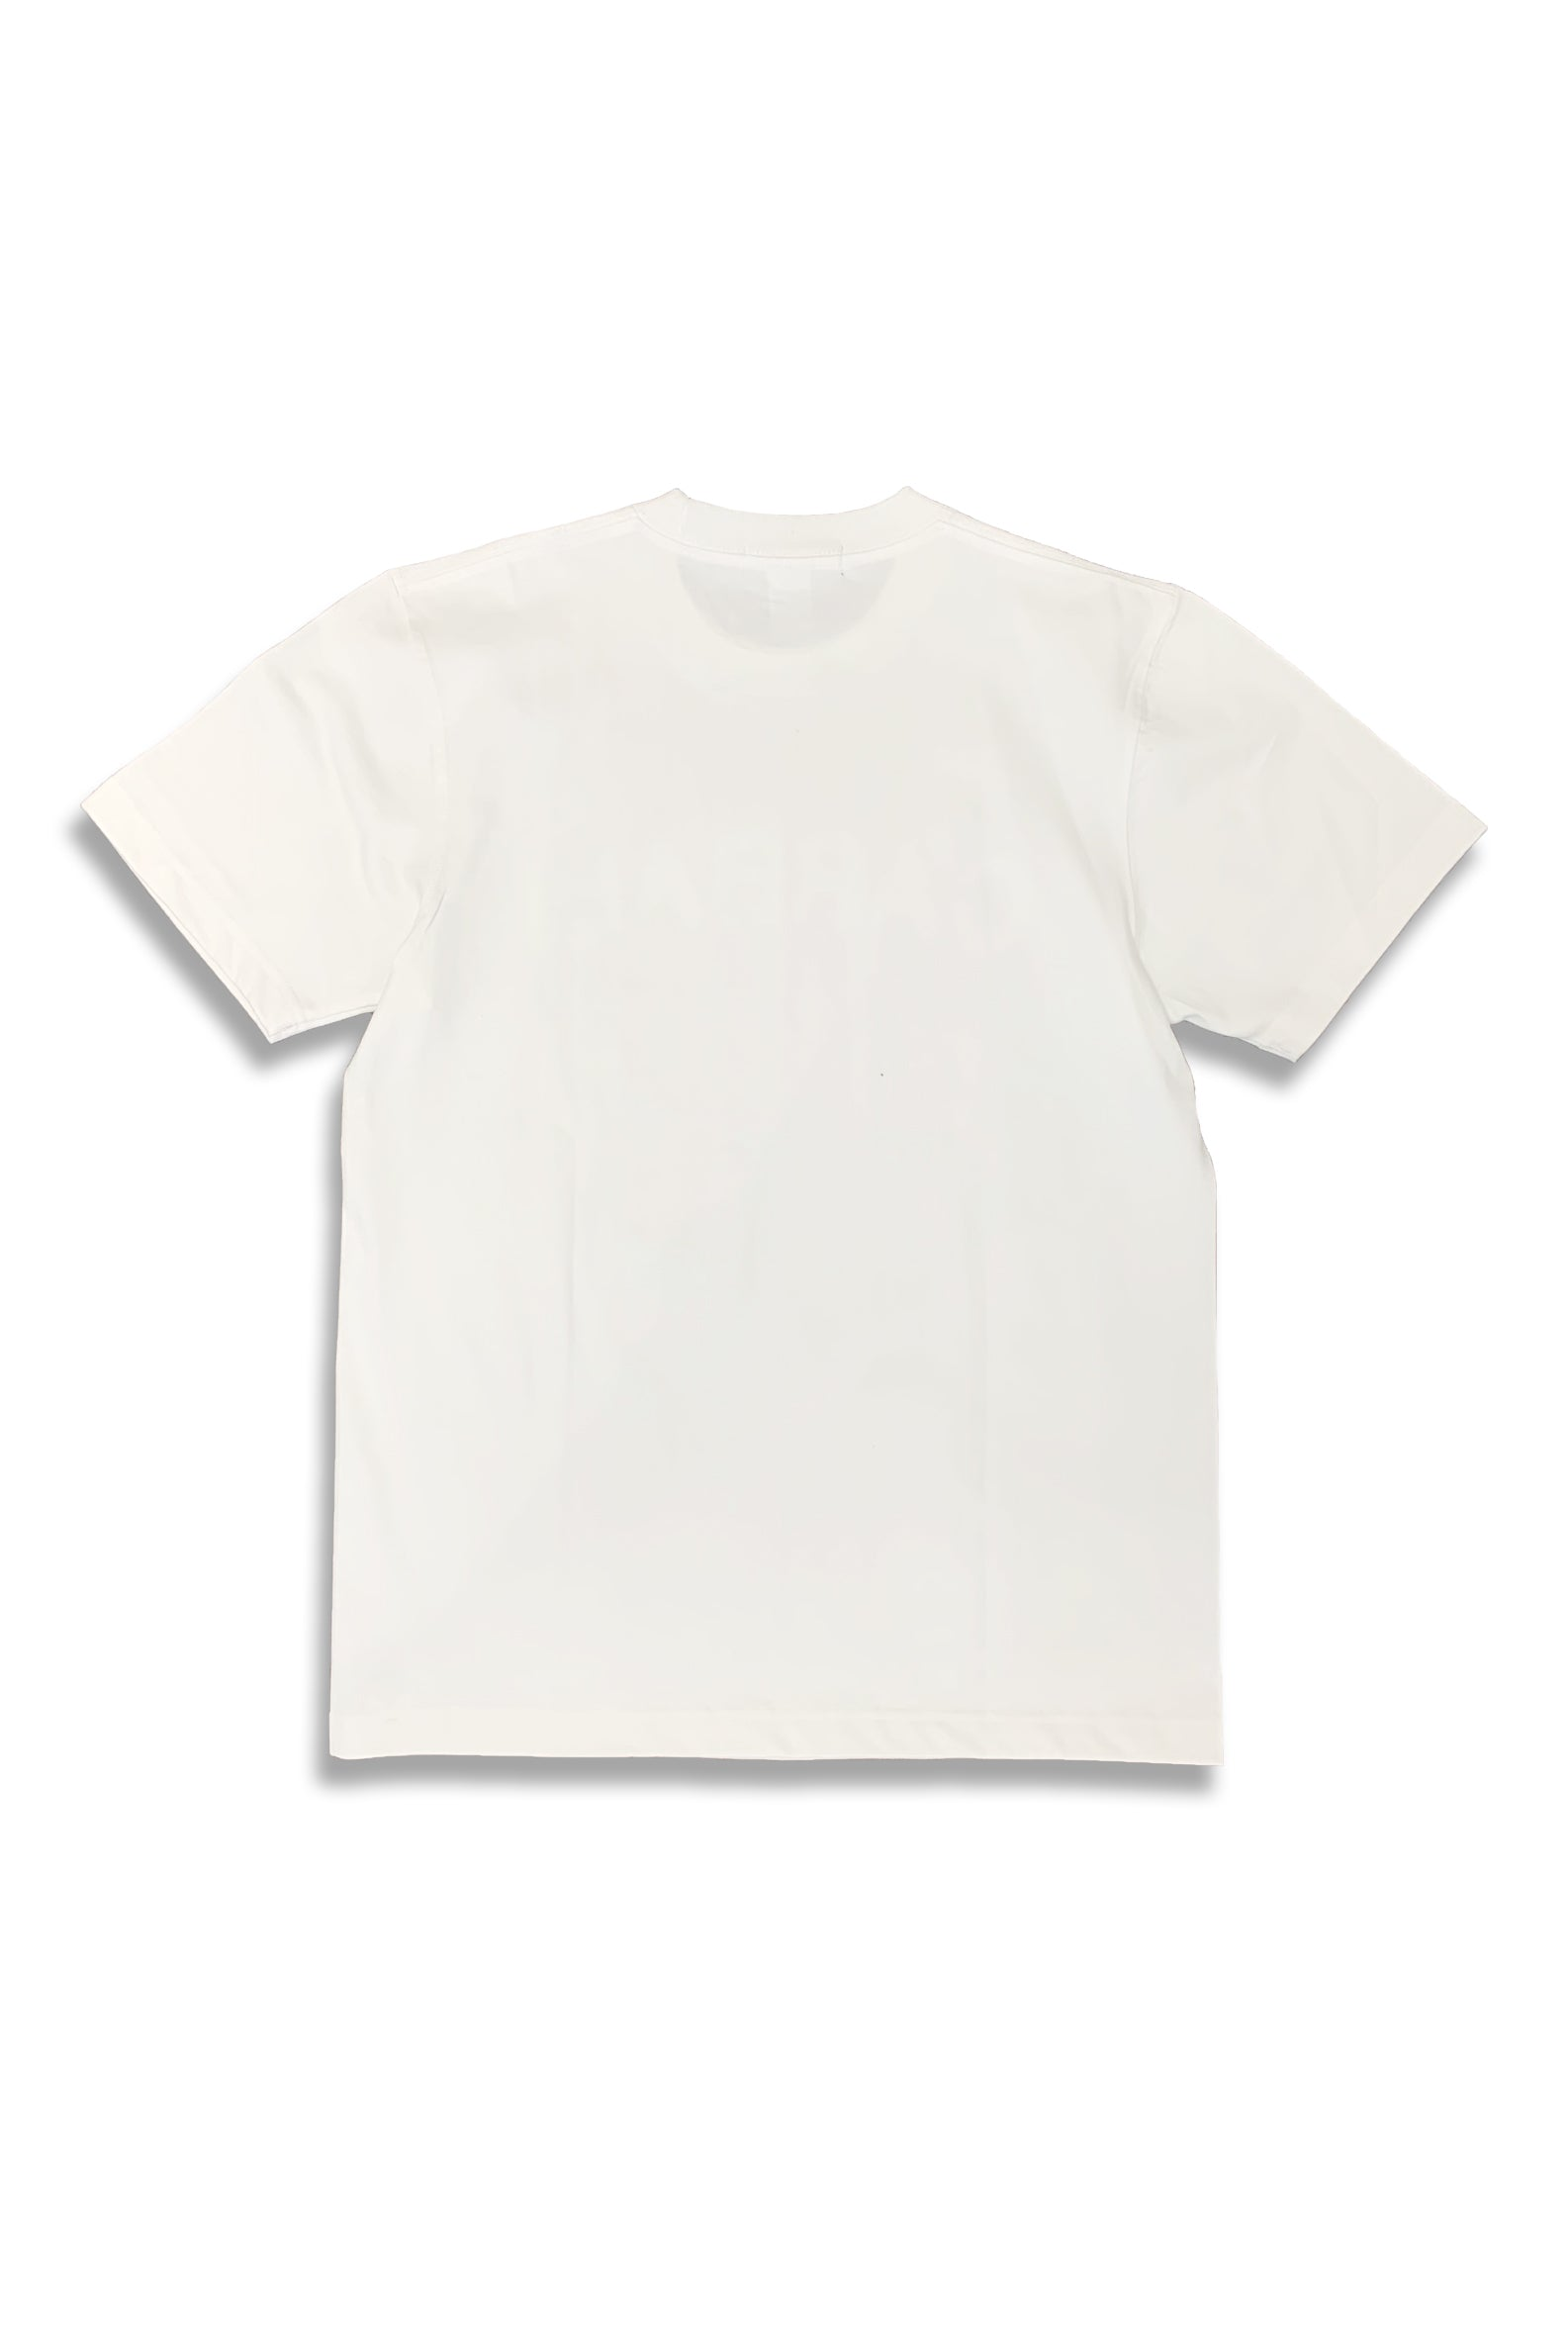 100% Japanese Cotton Graphic Tee